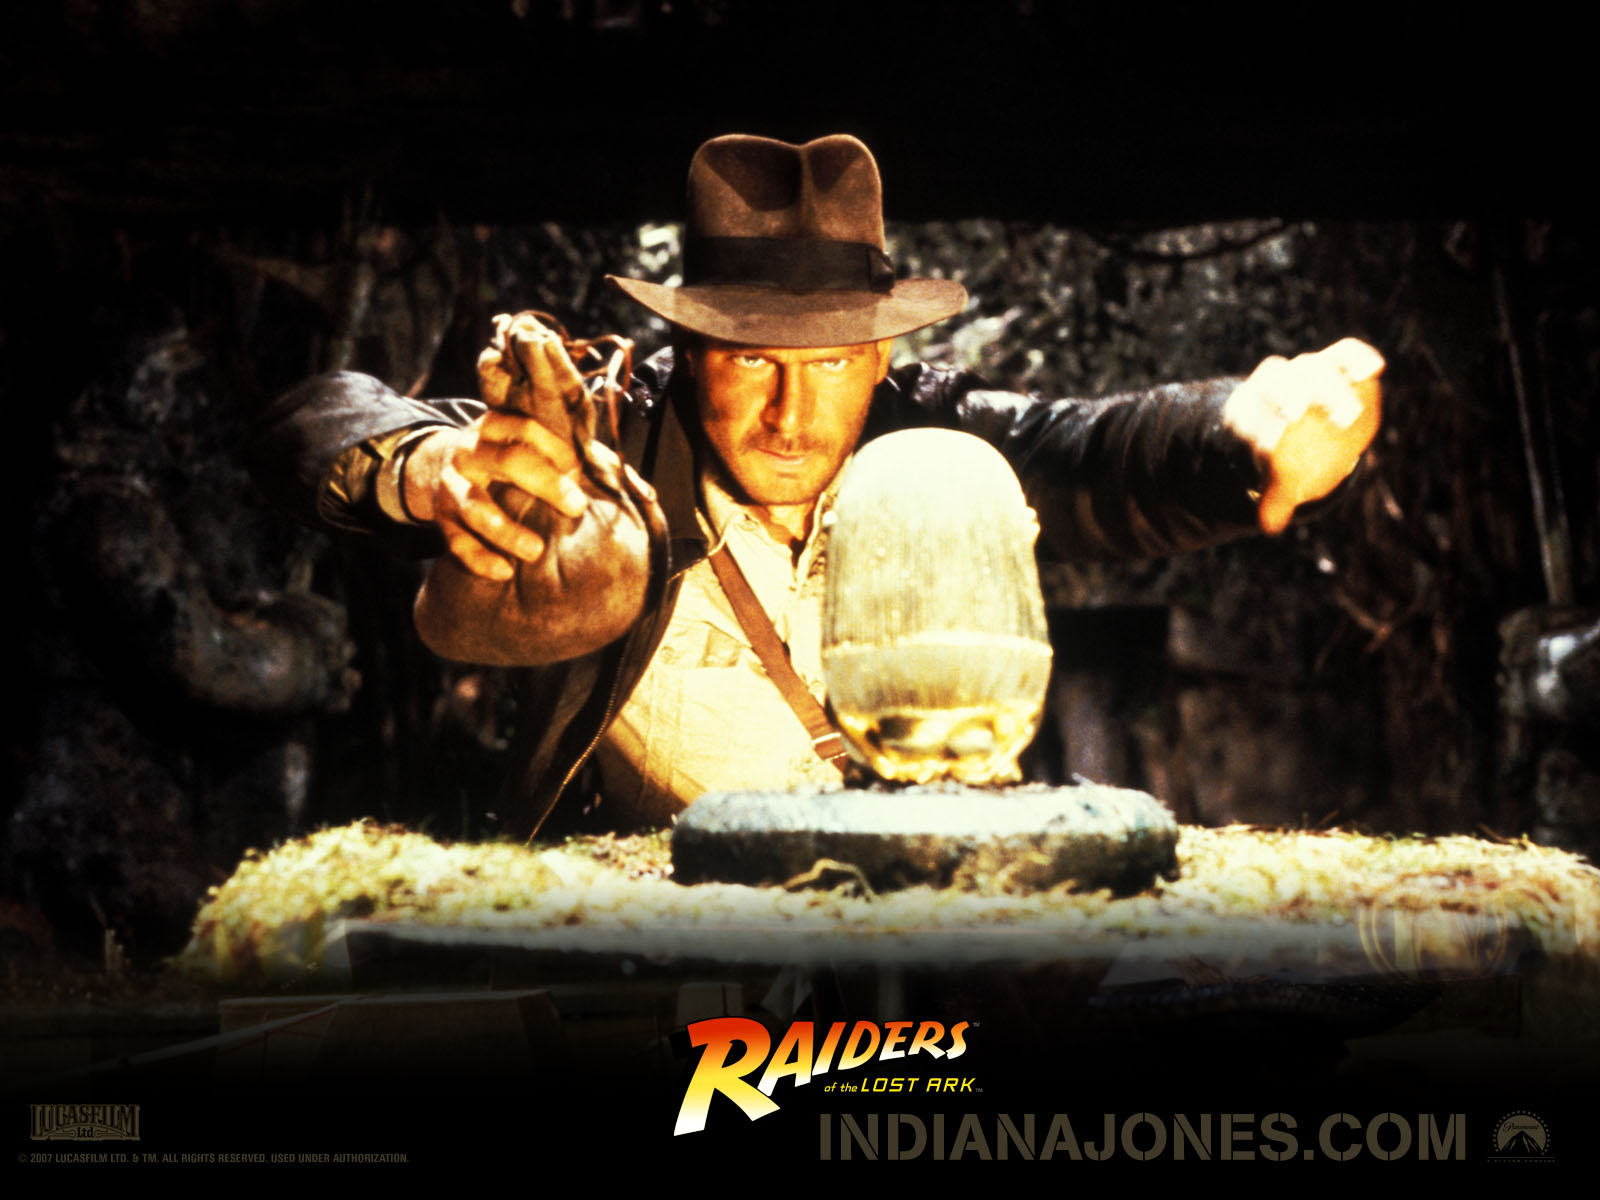 Indiana Jones images Raiders of the Lost Ark HD wallpaper and 1600x1200